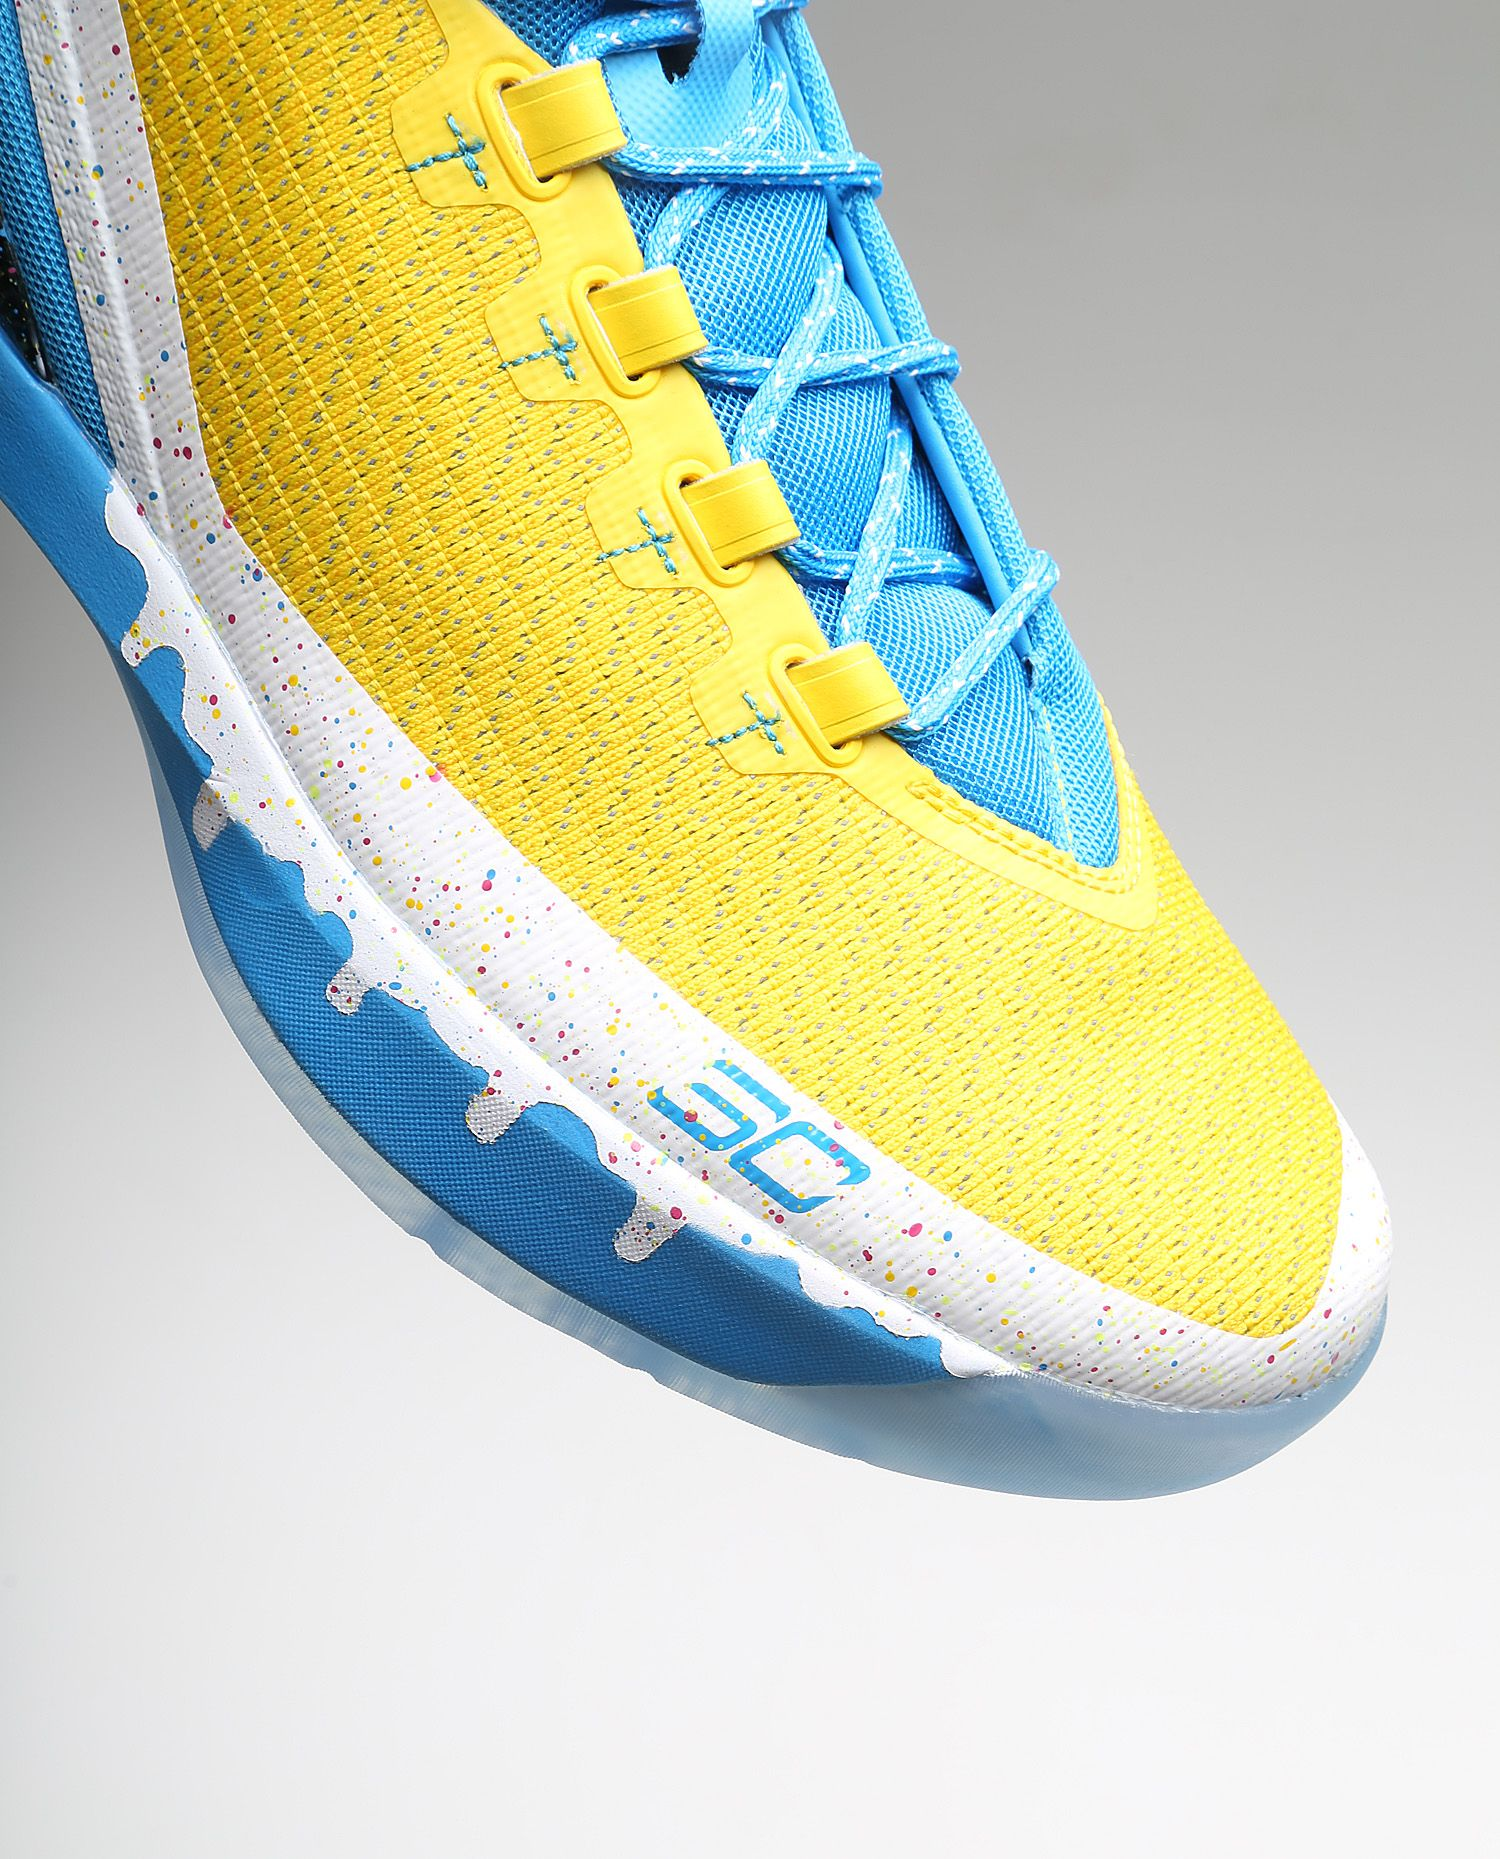 e7a0e8a7d06 Exclusive    Stephen Curry s